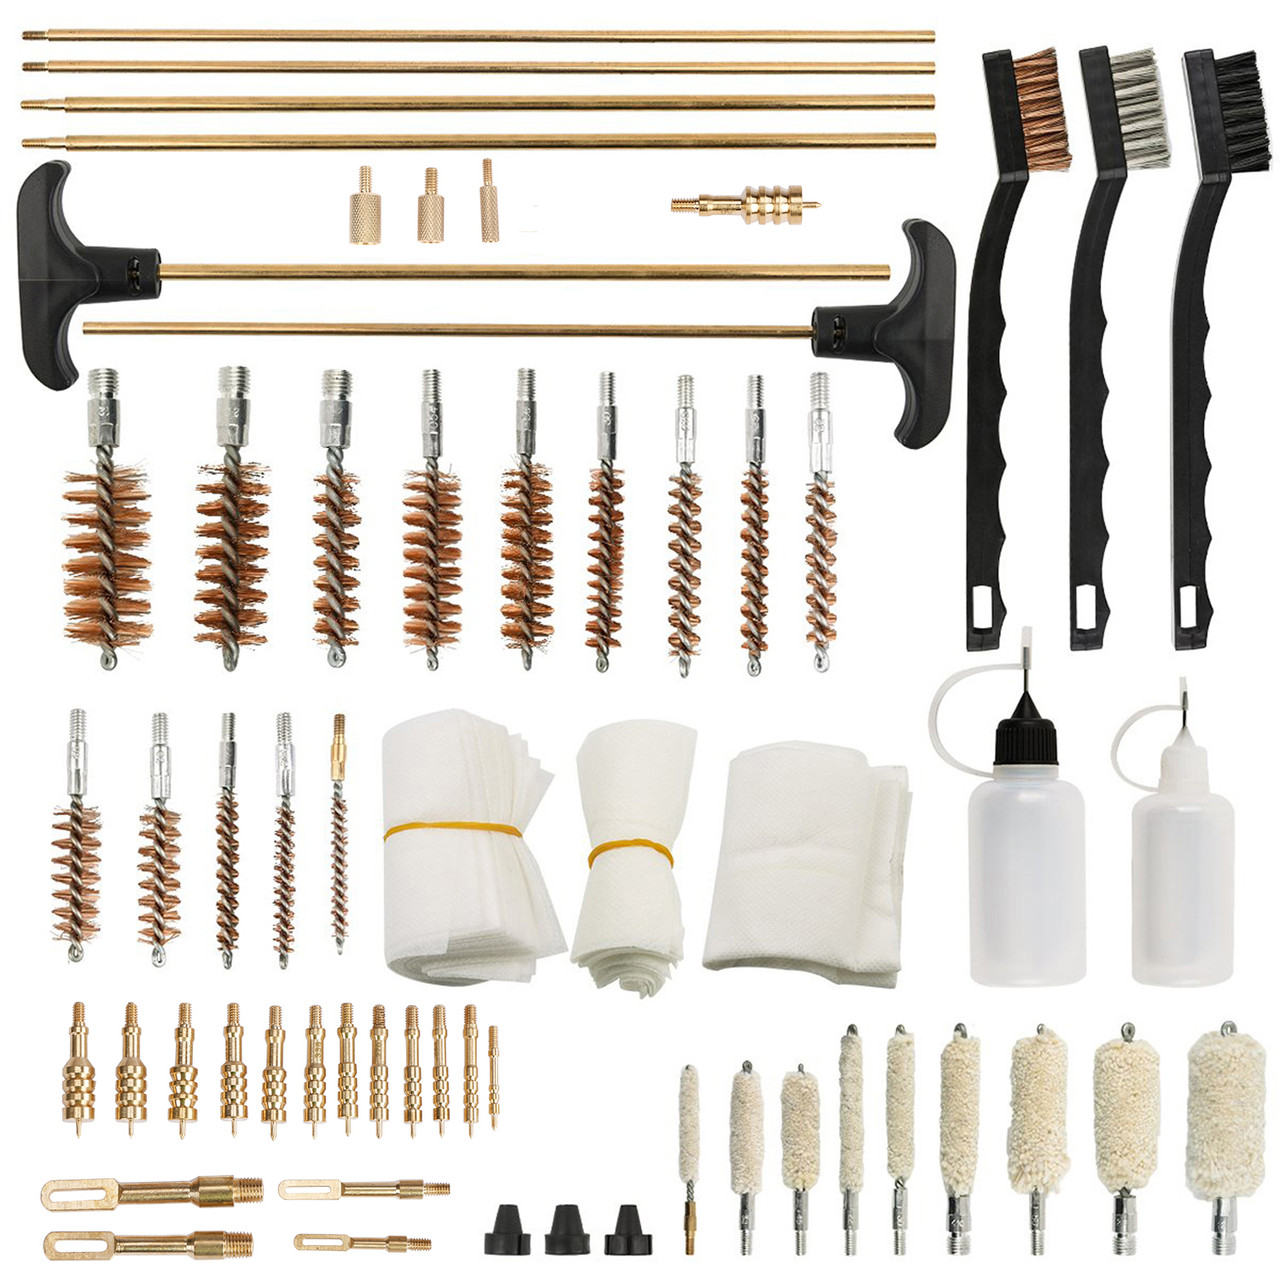 USSOLID Gun Cleaning Kit- Universal Gun Maintenance Supplies for Rifle Pistol Shotgun 9mm, 163pcs